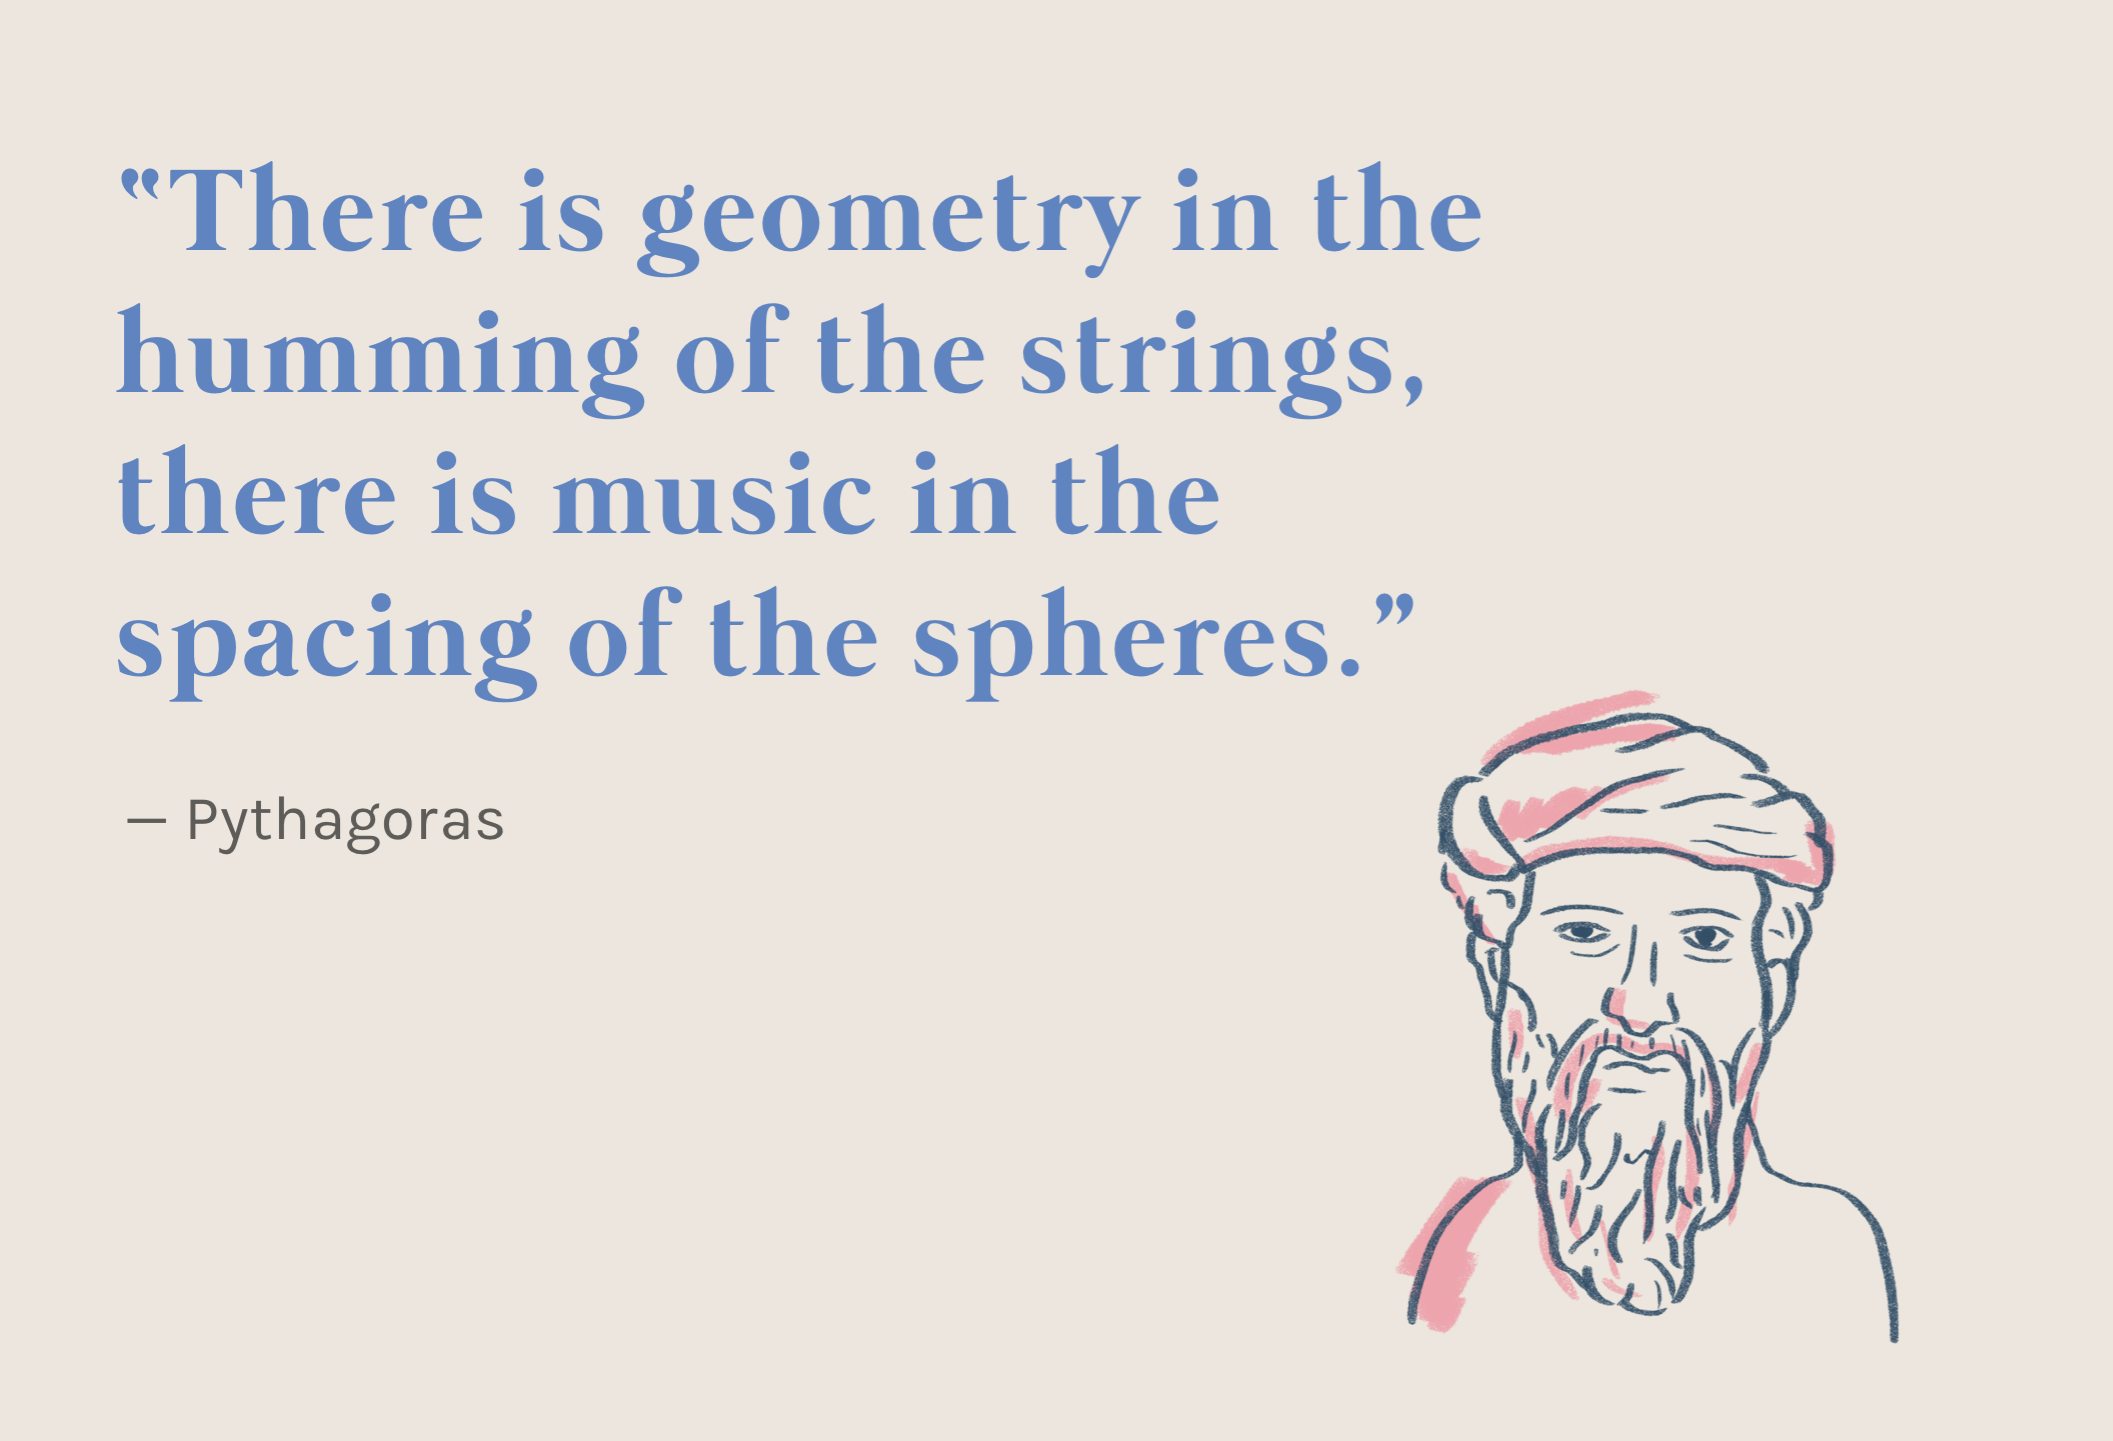 Pythagoras believed that the motions of the planets along the celestial  sphere created harmonious music.